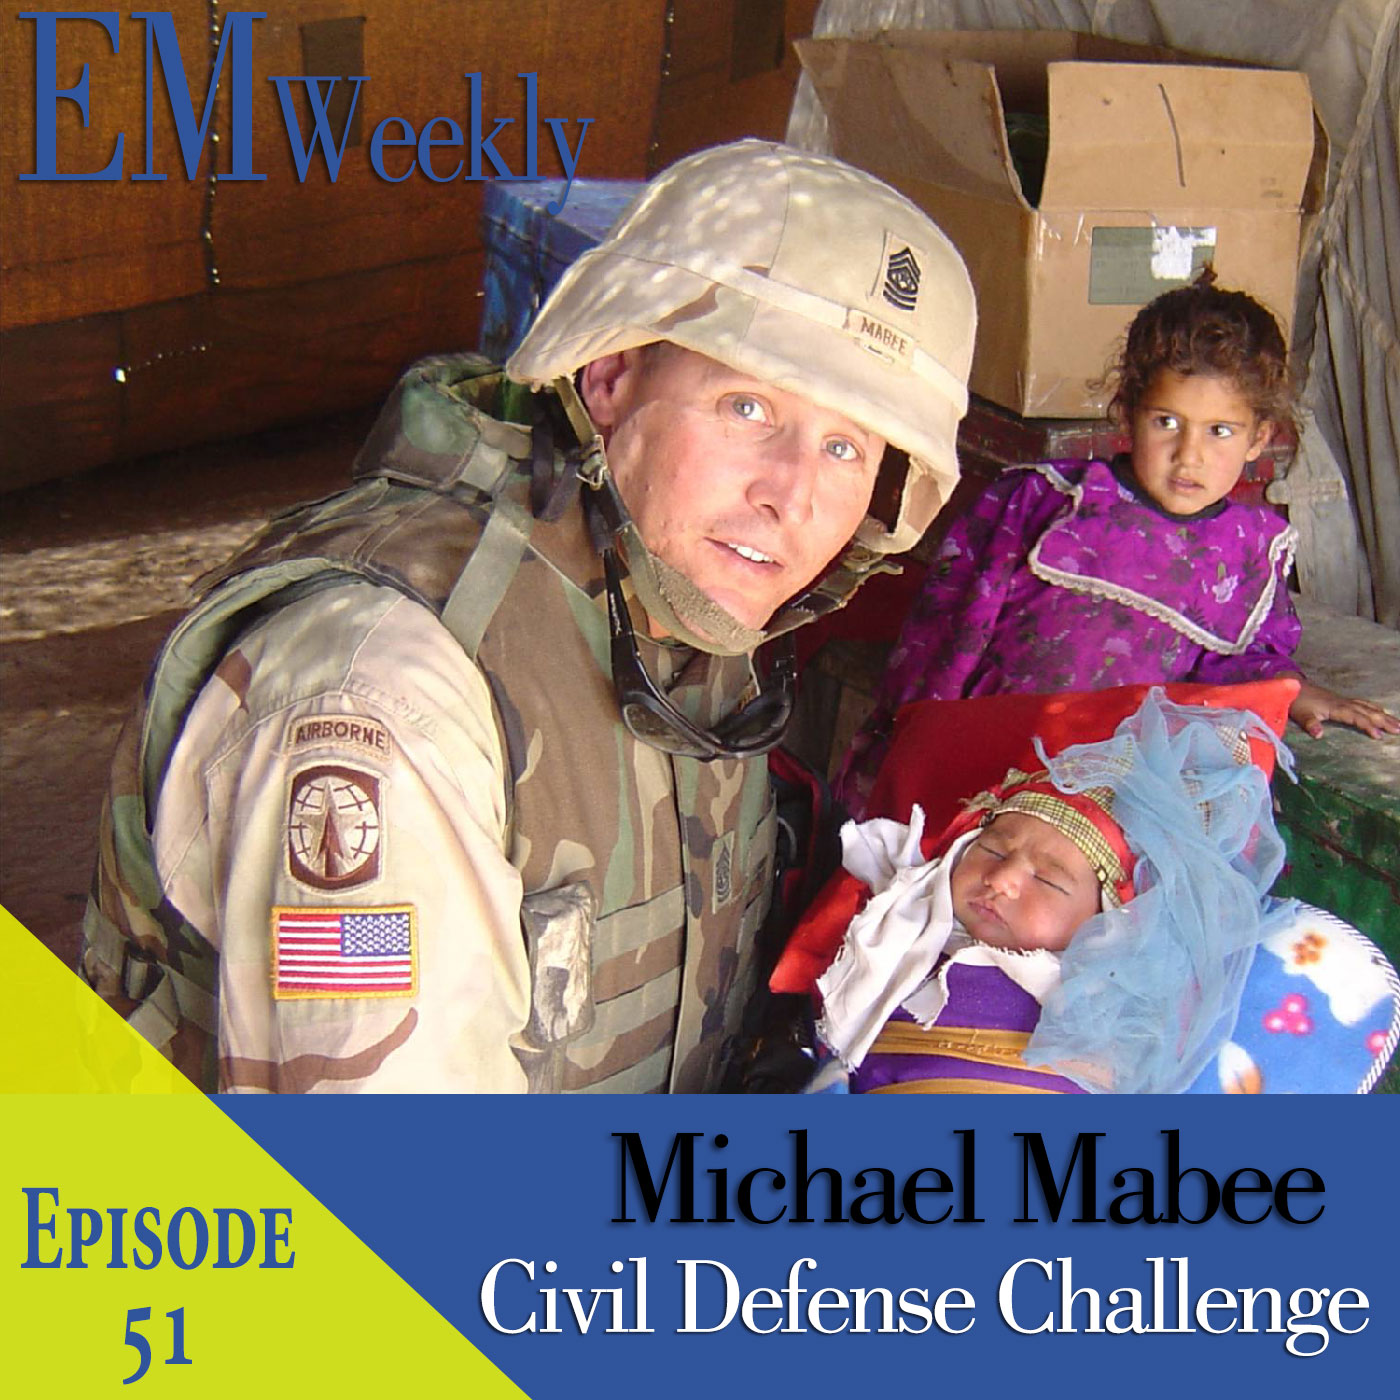 Michael Mabee on Civil Defense